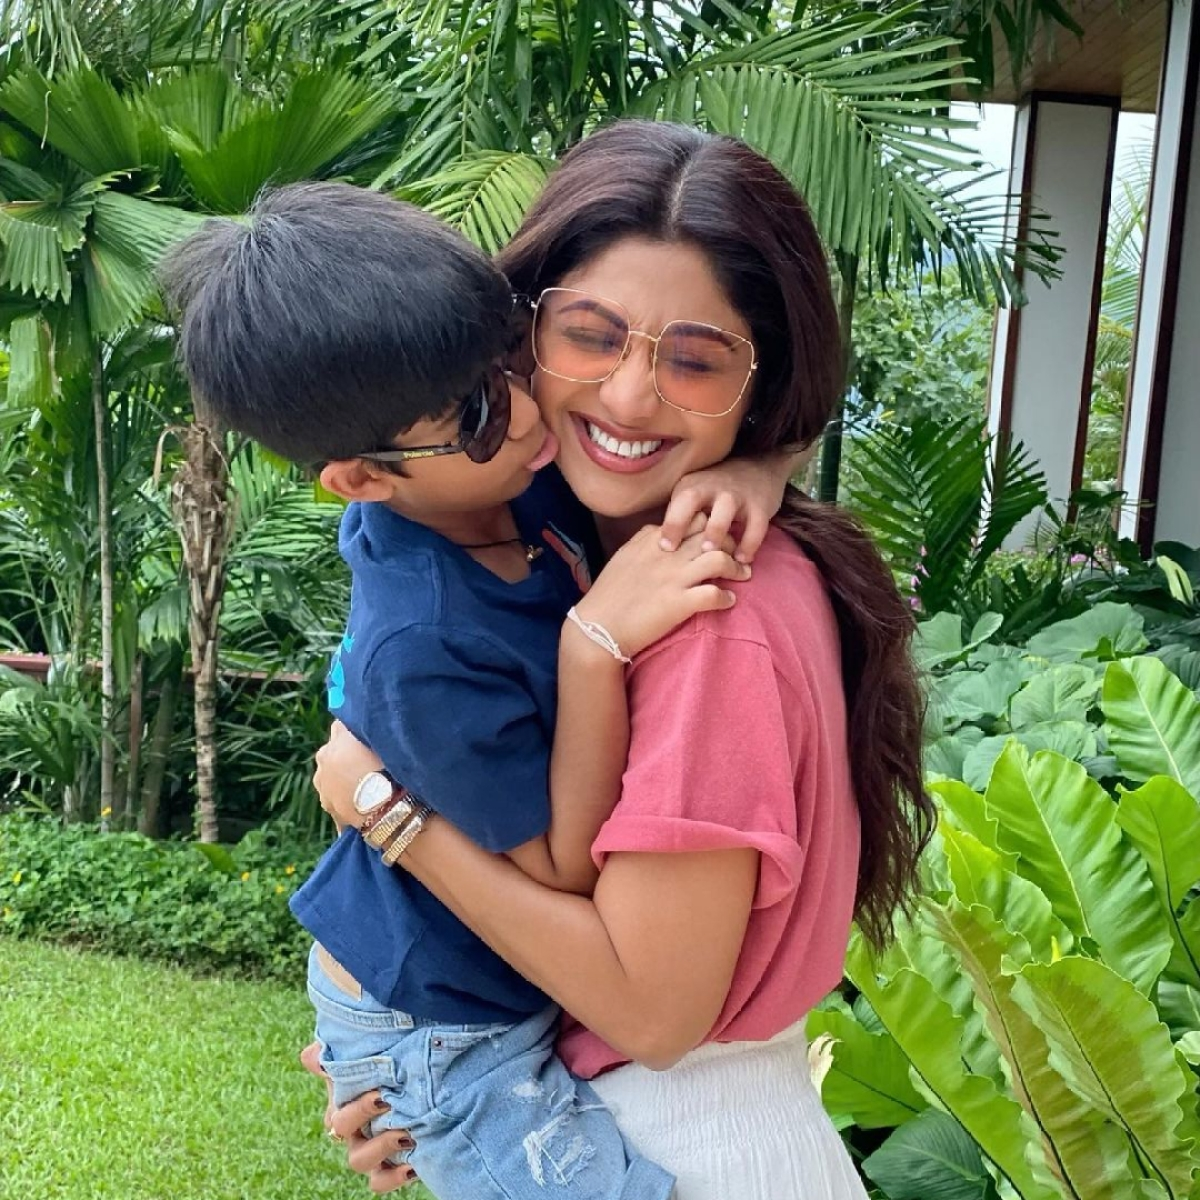 Shilpa Shetty's future daughter-in-law can have her 20-carat diamond ring under THIS condition